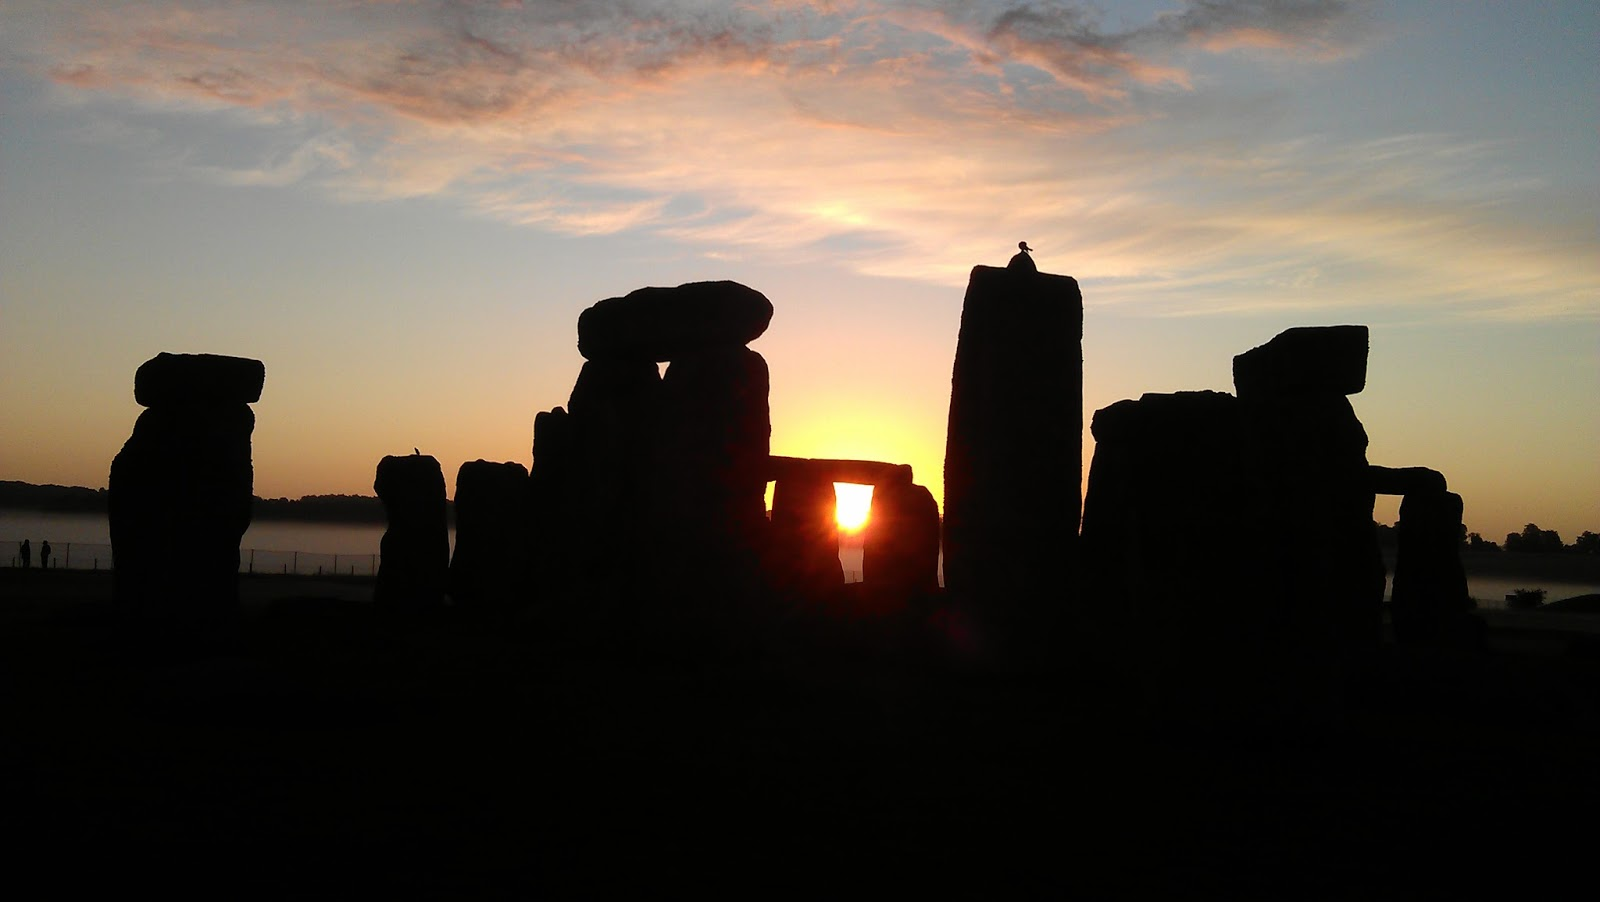 English Heritage is pleased to be providing Managed Open Access to  Stonehenge for the Summer Solstice on 20-21 June 2015.